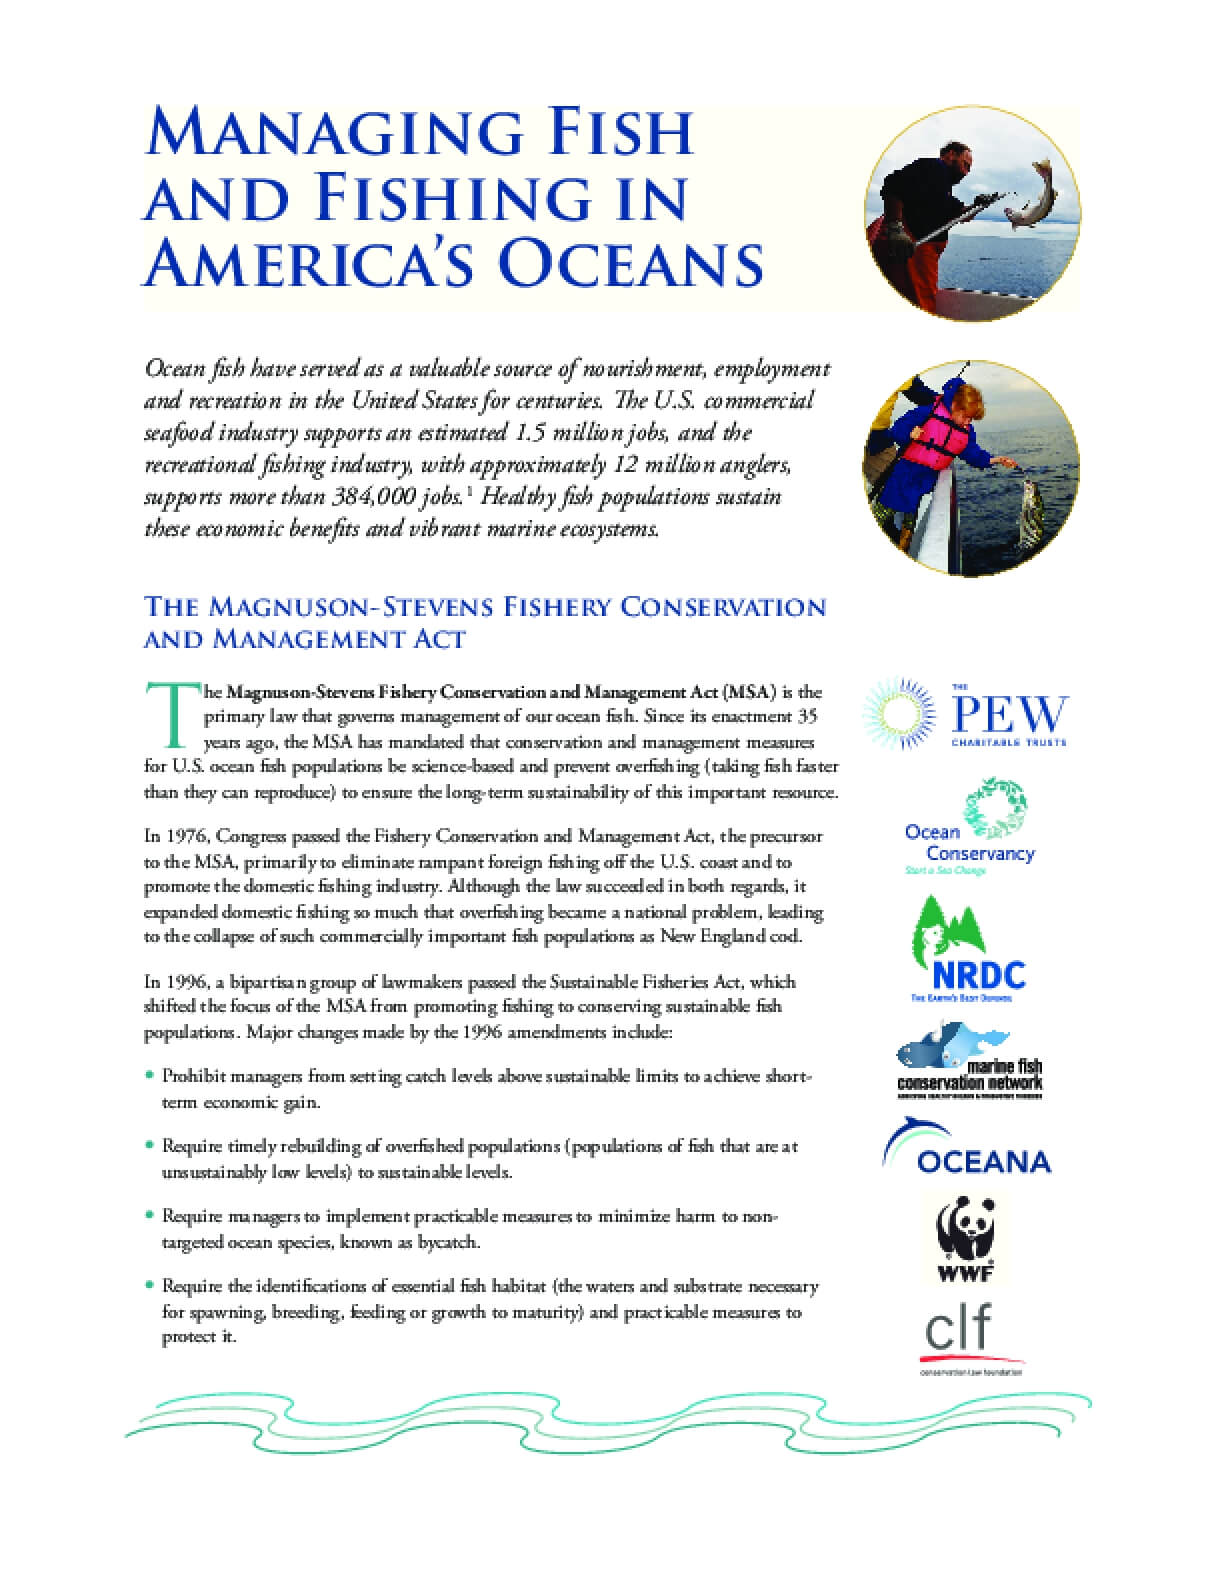 Managing Fish and Fishing in America's Oceans